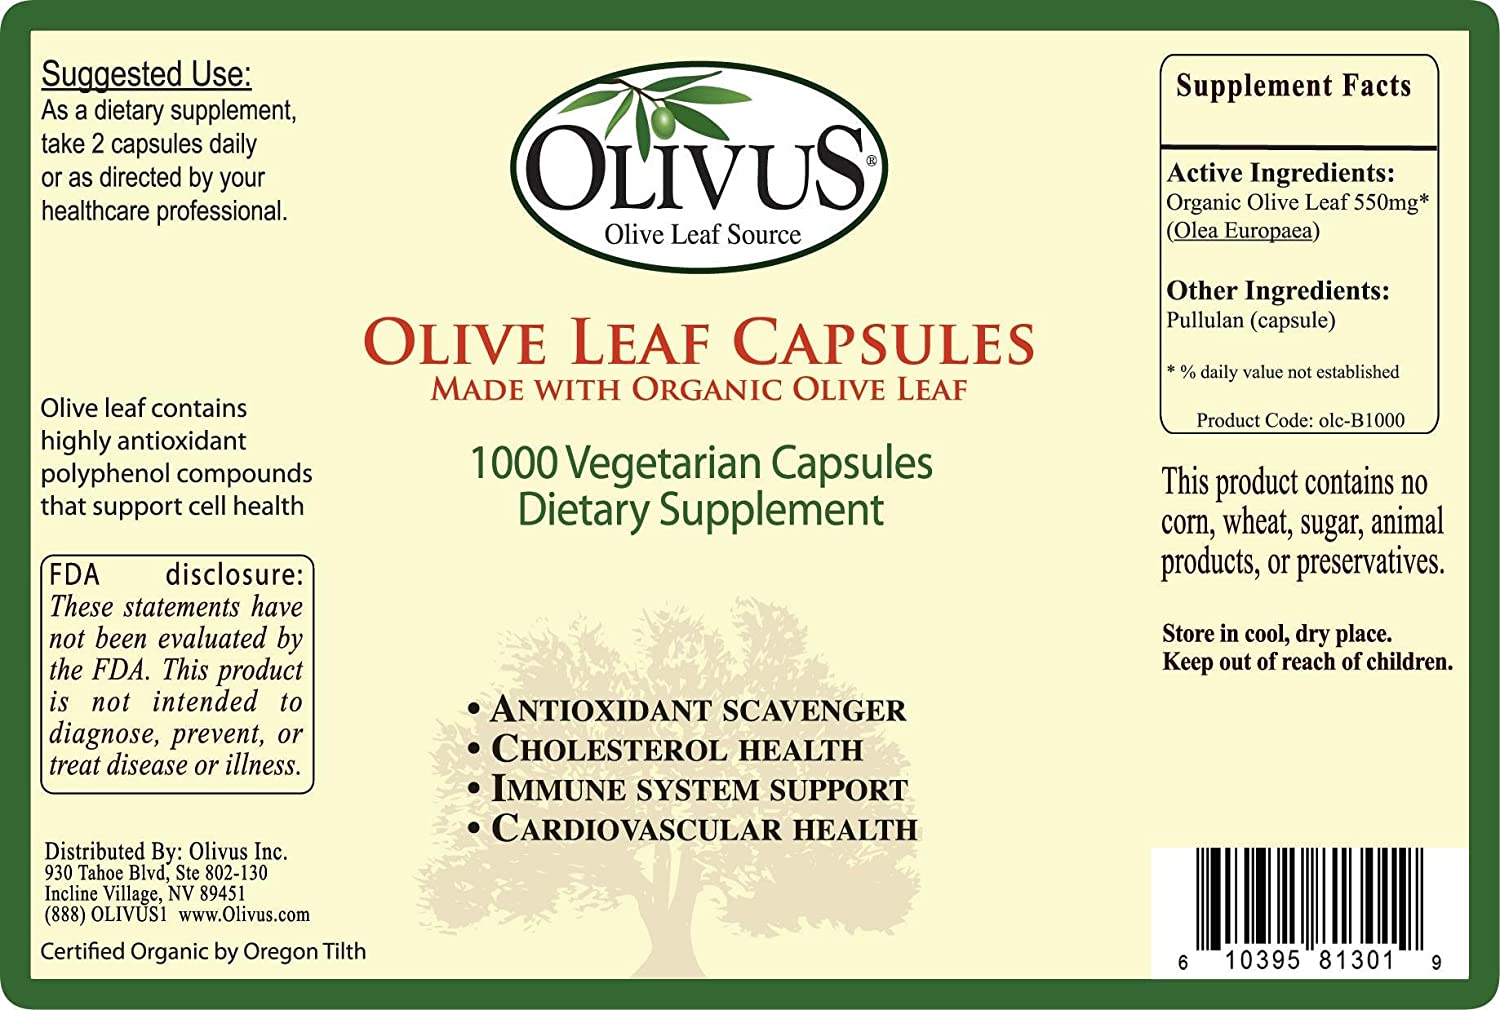 Olivus Olive Leaf Capsules Bulk 1000ct – 550 mg Vegetable Capsules – Pure Organic Olive Leaf Powder with No Fillers – Immune Support Antioxidant Supplement